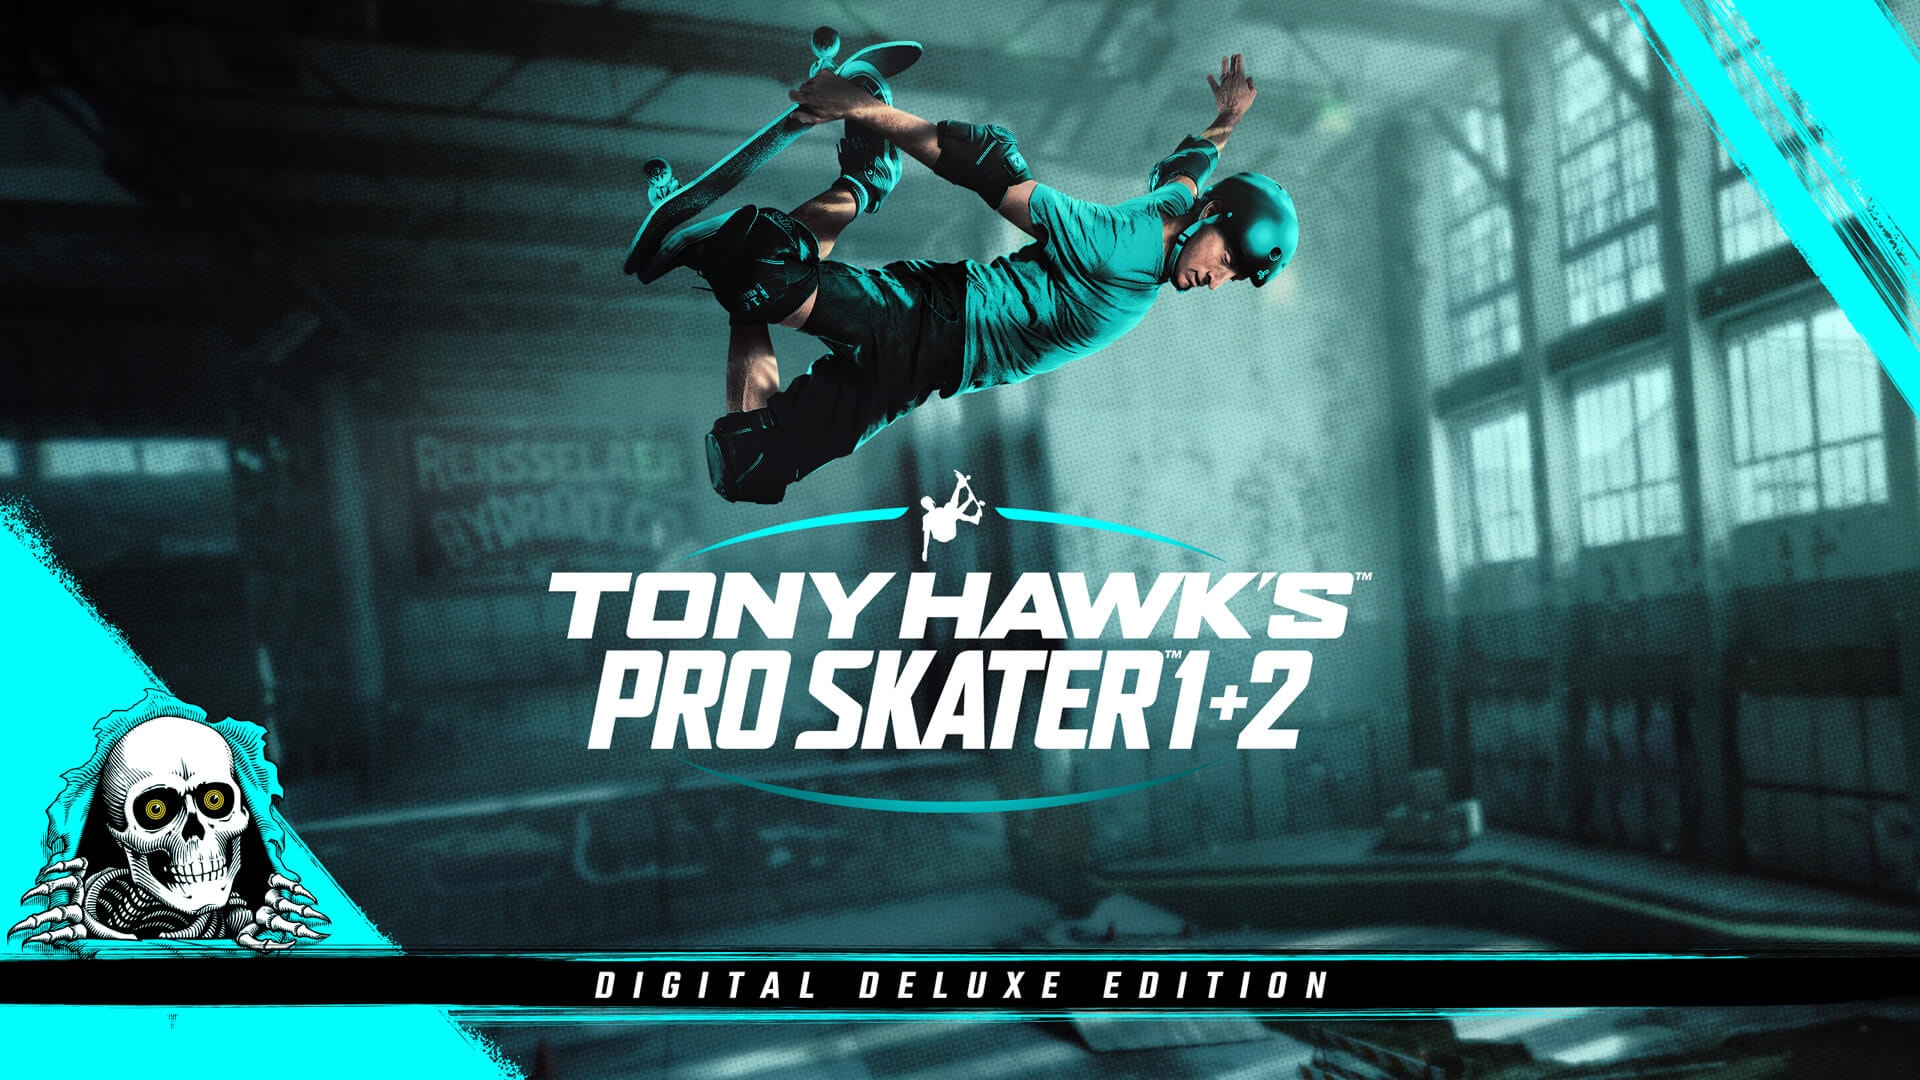 Tony Hawk's Pro Skater 1+2 Deluxe Edition+DLC со скидкой, офлайн, denuvo АВТОАКТИВАЦИЯ | PC (GLOBAL ENG/MULTi) Epic Games